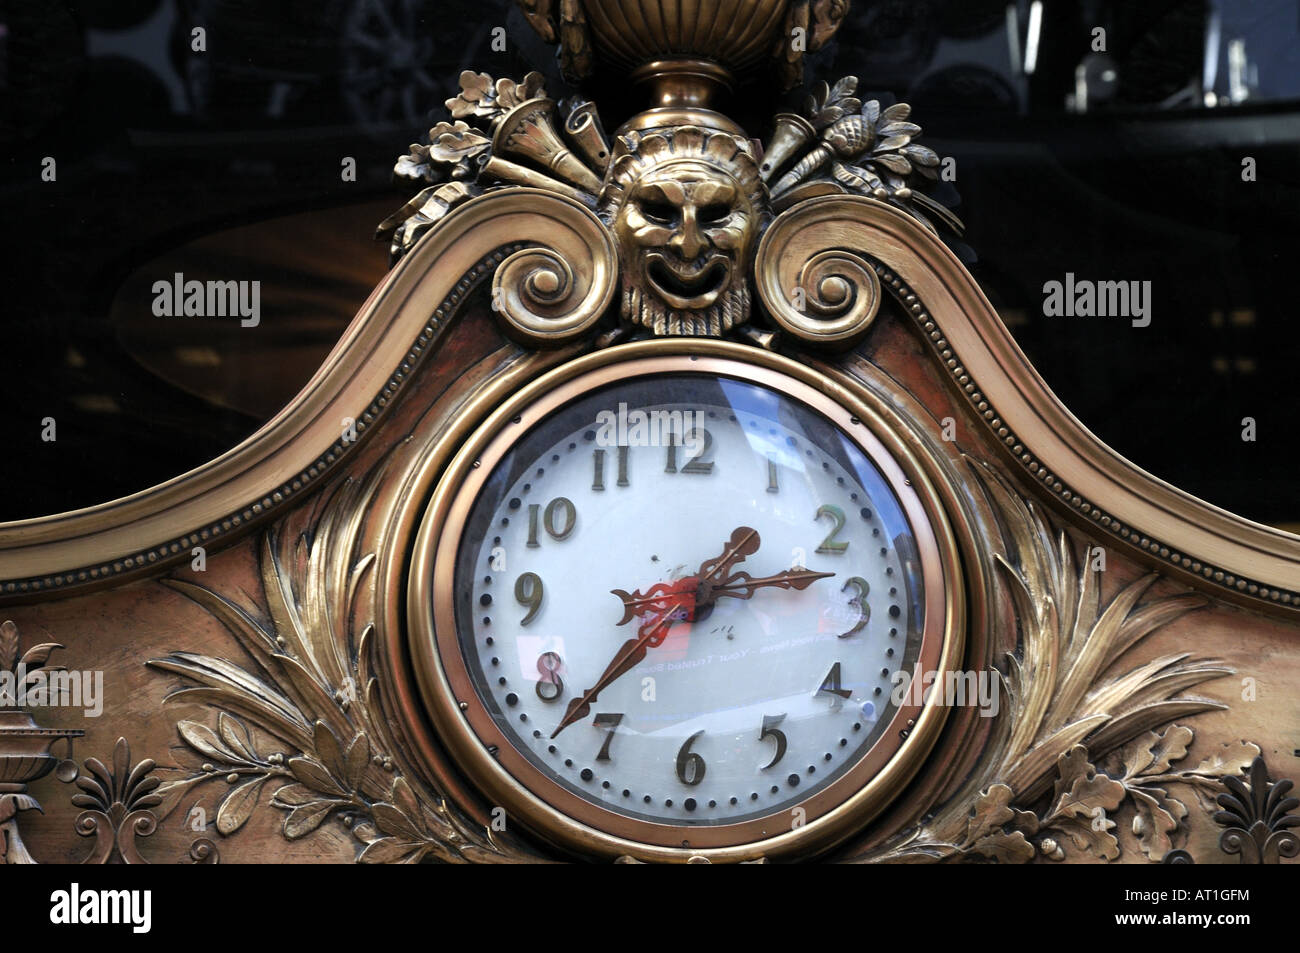 A clock above the front door of the Paramount Theatre Building on Broadway in Manhattan. - Stock Image